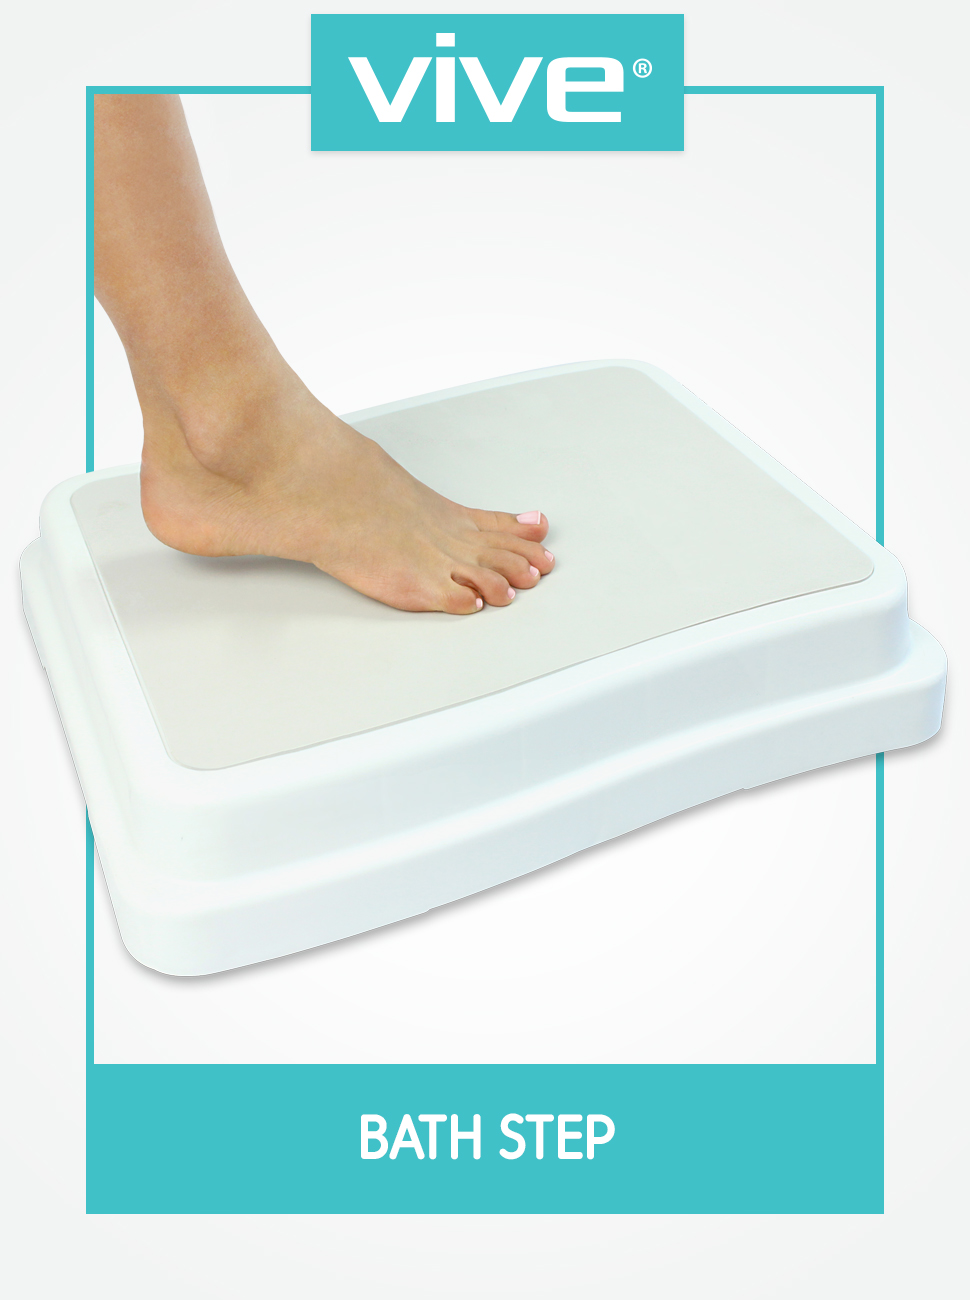 Amazon.com: Bath Step by Vive - Safe Step Bathroom Aid for Entering ...